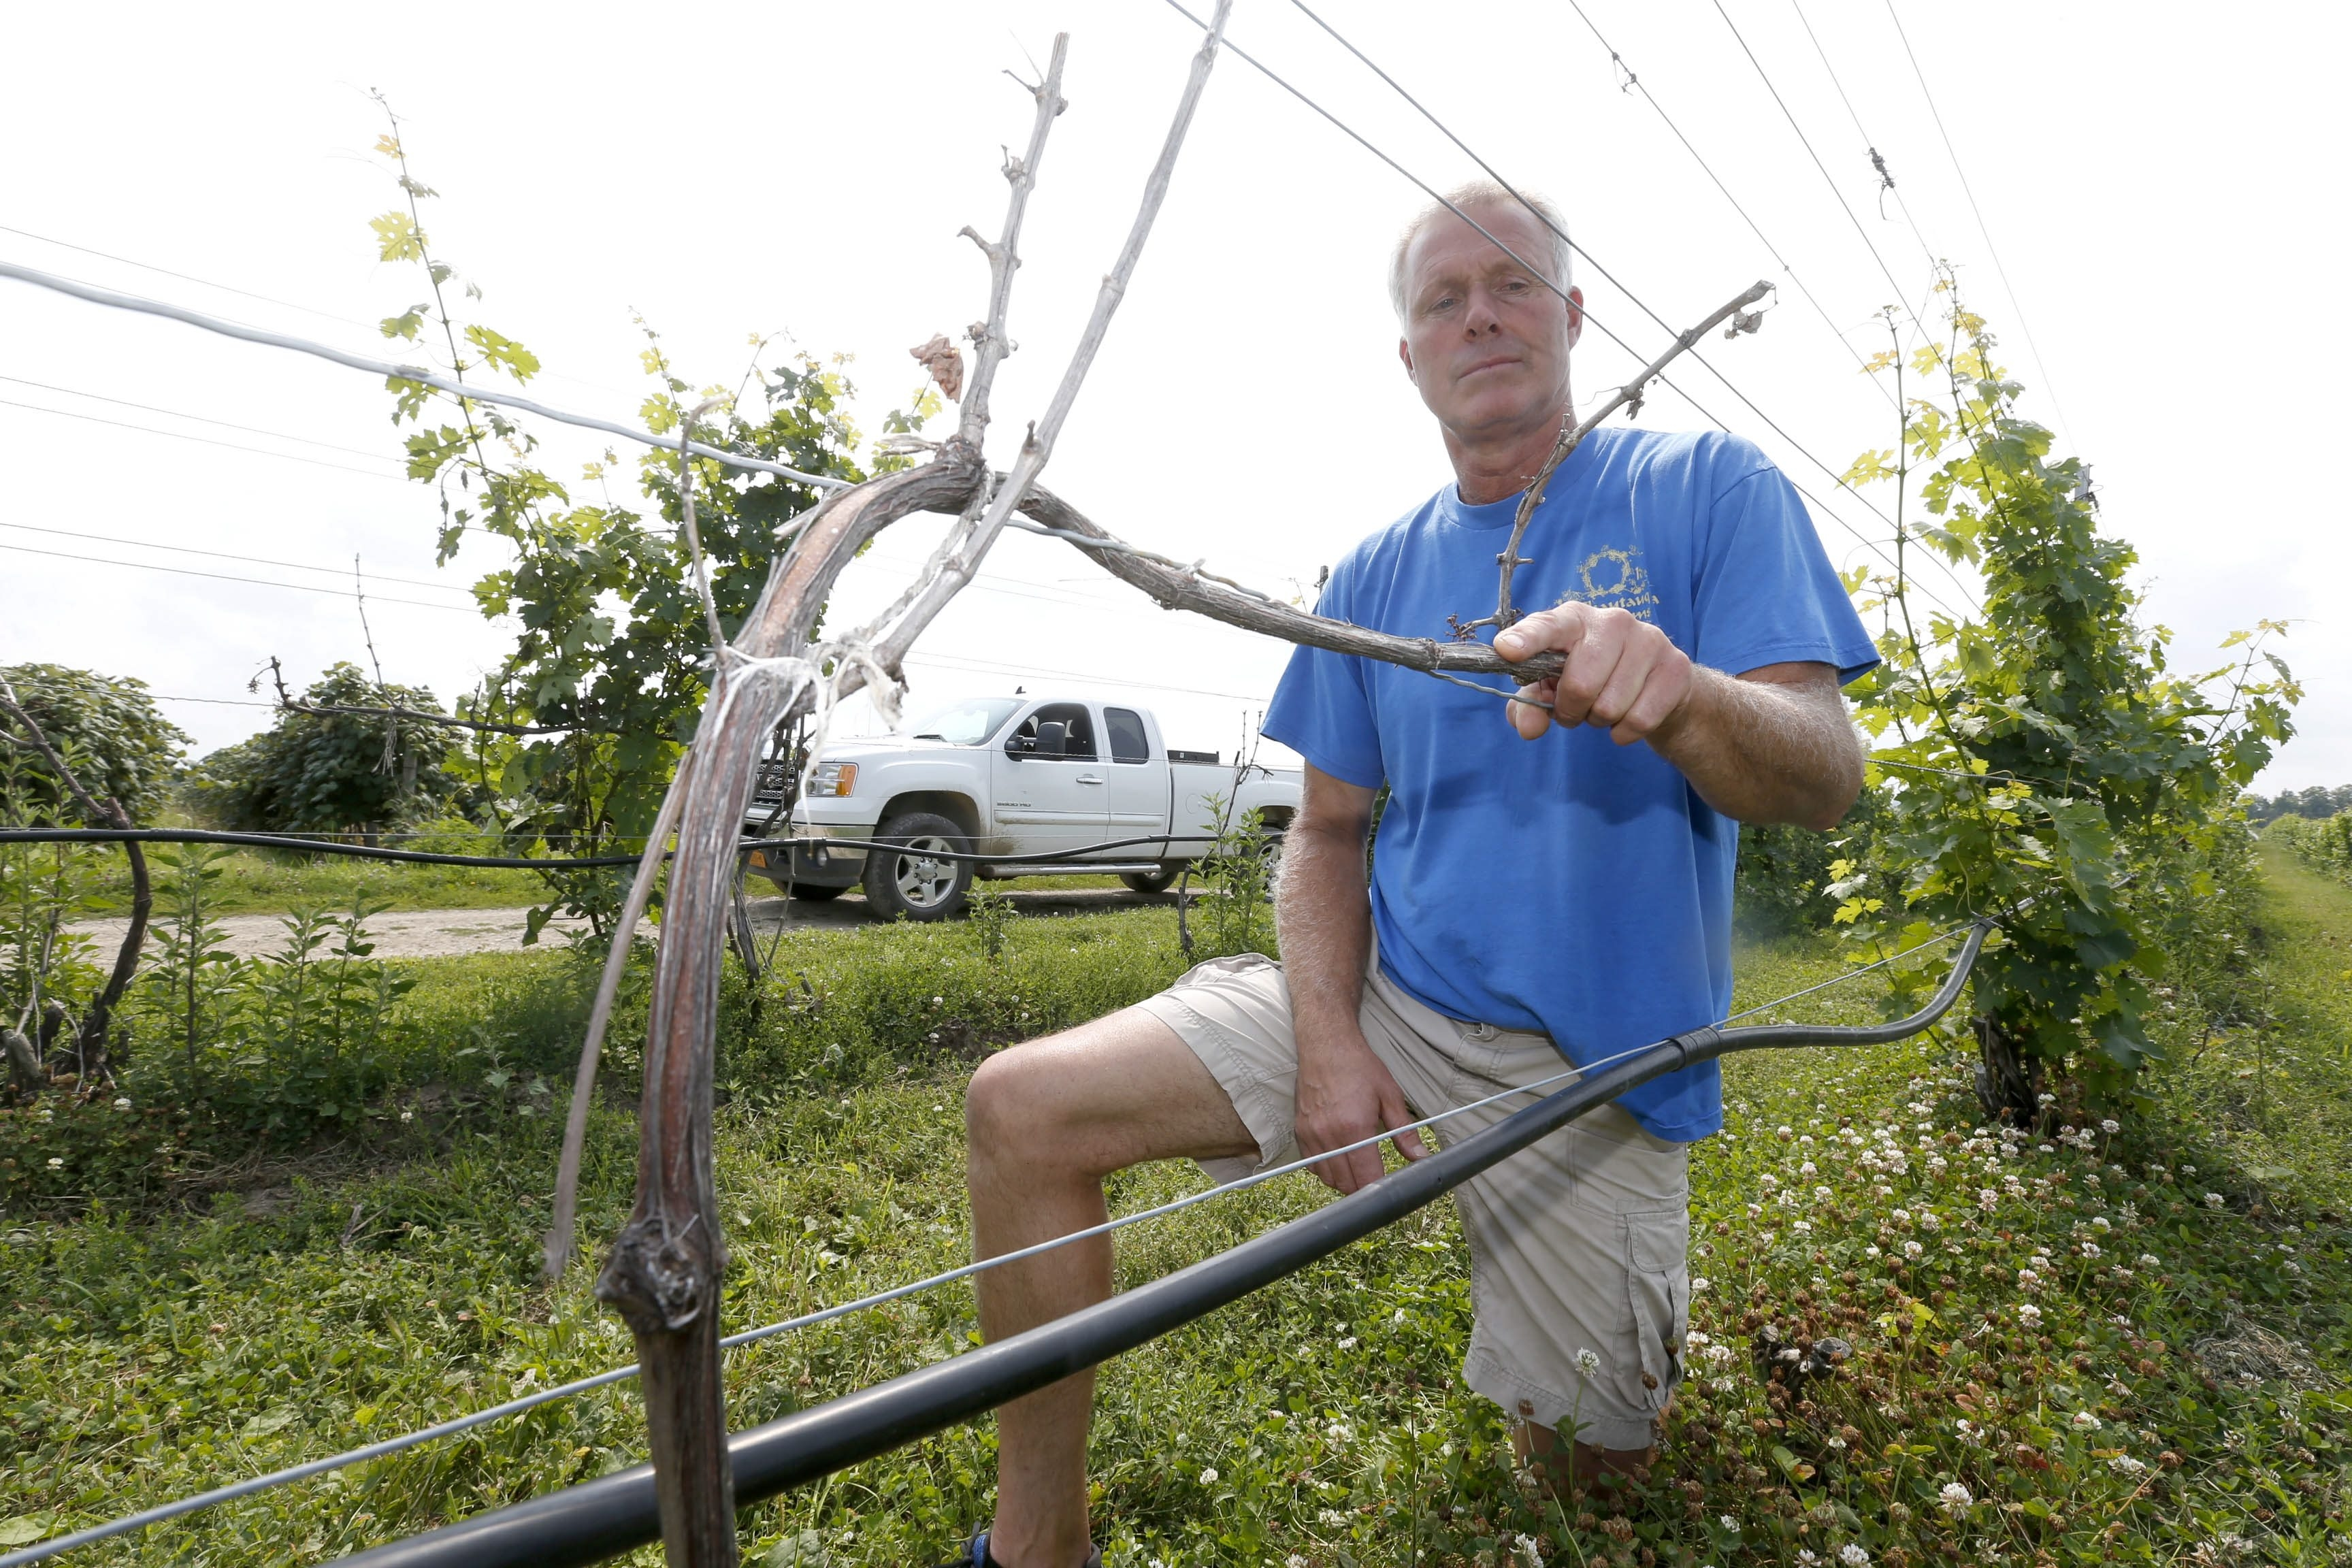 Mike Jordan of 21 Brix Winery and Olde Chautauqua Farms stands near a bare wire that would normally be heavy with grapes on Aug. 1. The heavy, prolonged winter severely damaged area vineyards.